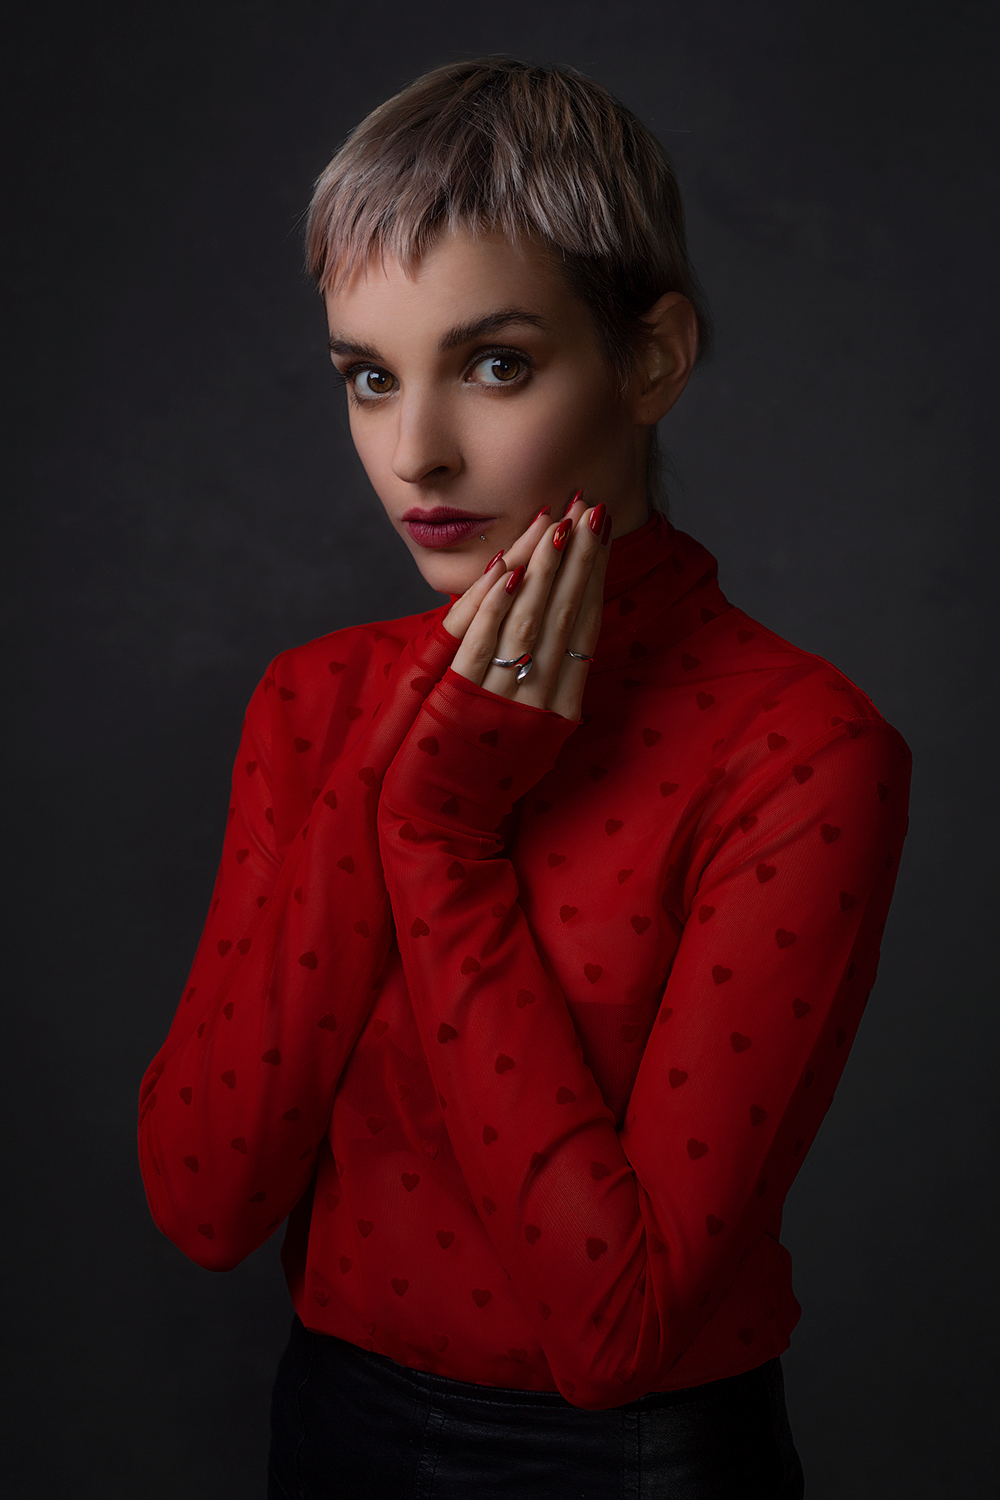 portrait of woman with red top